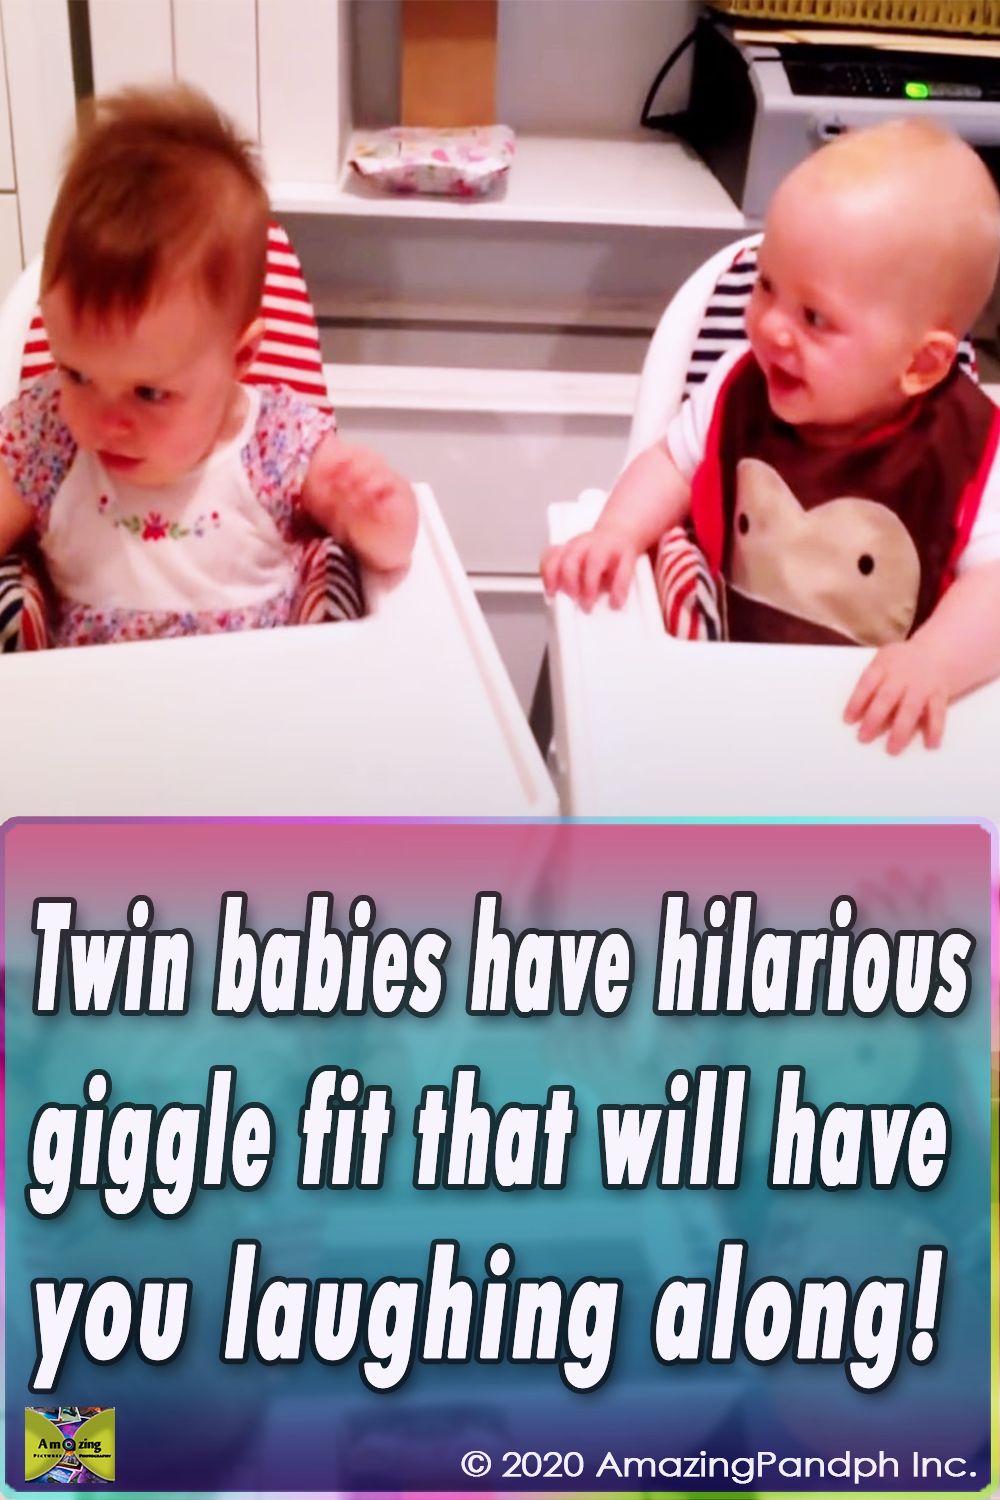 viral video,most viewed,amazing,funny,so cute video,cutest video,babies laughing,hilarious,giggle,babies giggle,viral,going viral,most viewed,much views,much played,most watched video,most shared,most played,most liked,cutest baby laugh